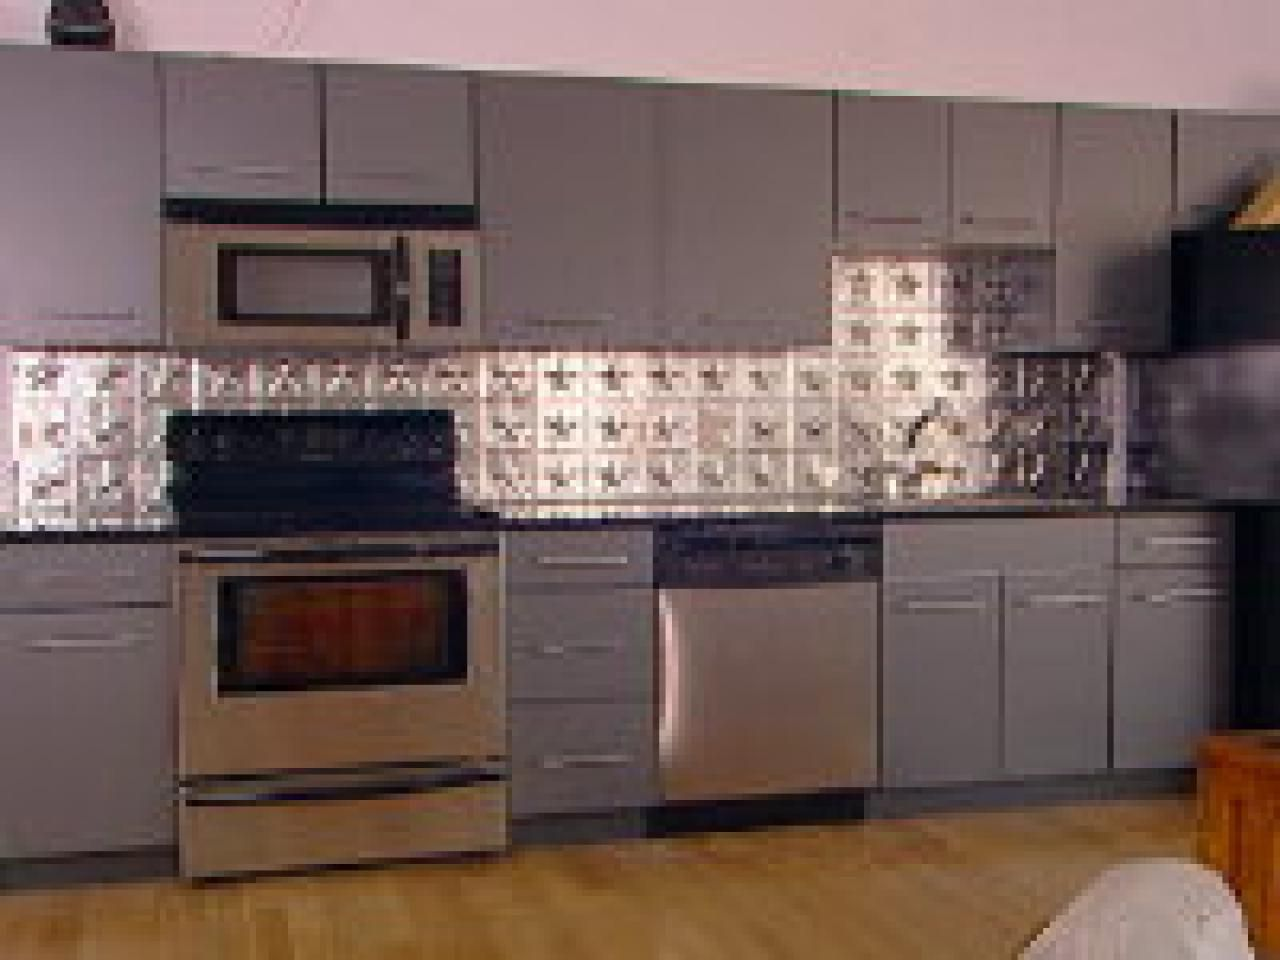 How To Create A Tin Tile Backsplash  Tin Tile Backsplash Hgtv Mesmerizing Tin Backsplash For Kitchen Decorating Inspiration